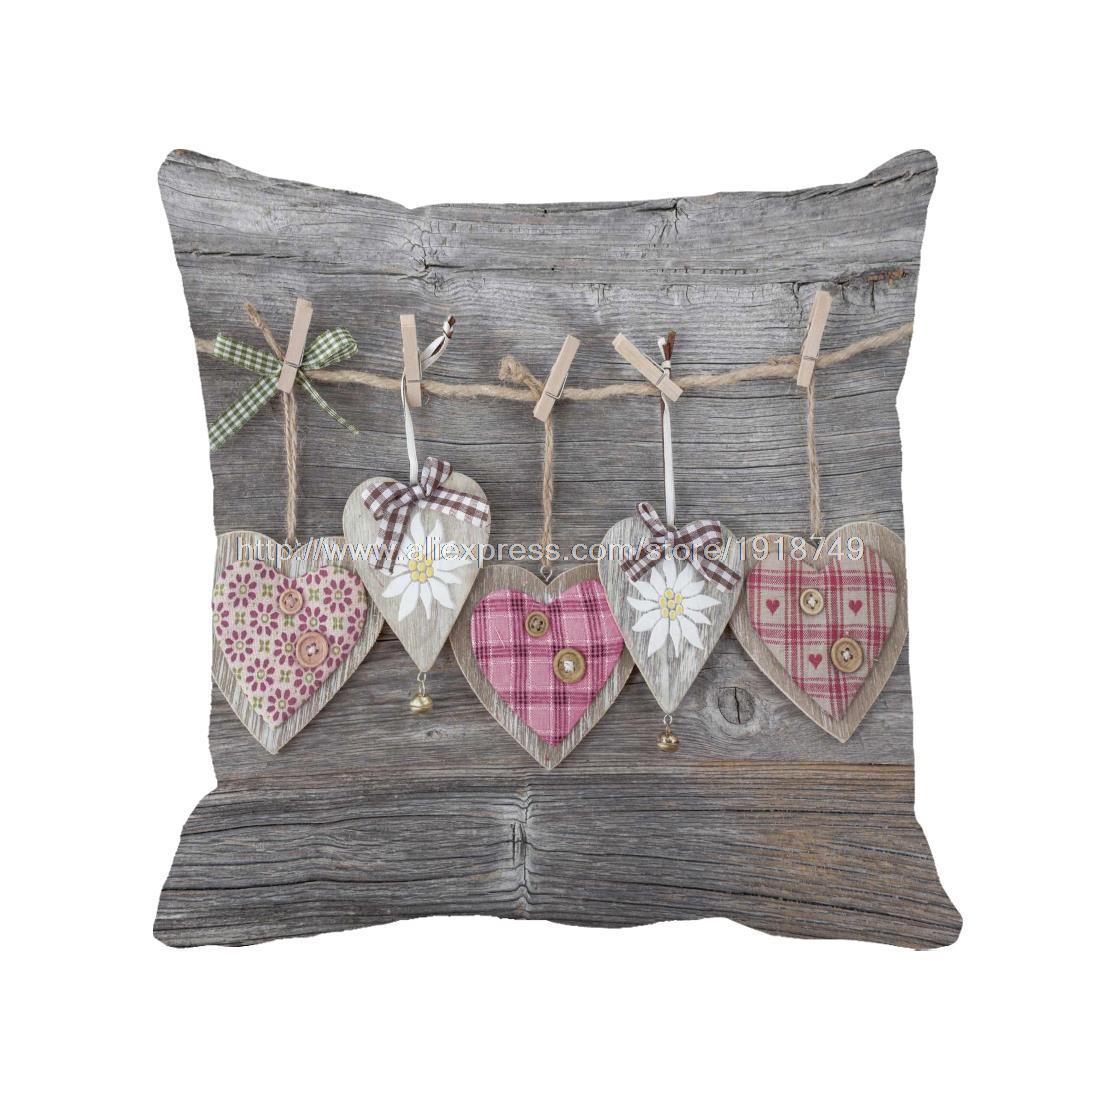 various heart shape printed wooden wedding home decorative cushion covers shabby chic gery throw pillow case for sofa chair